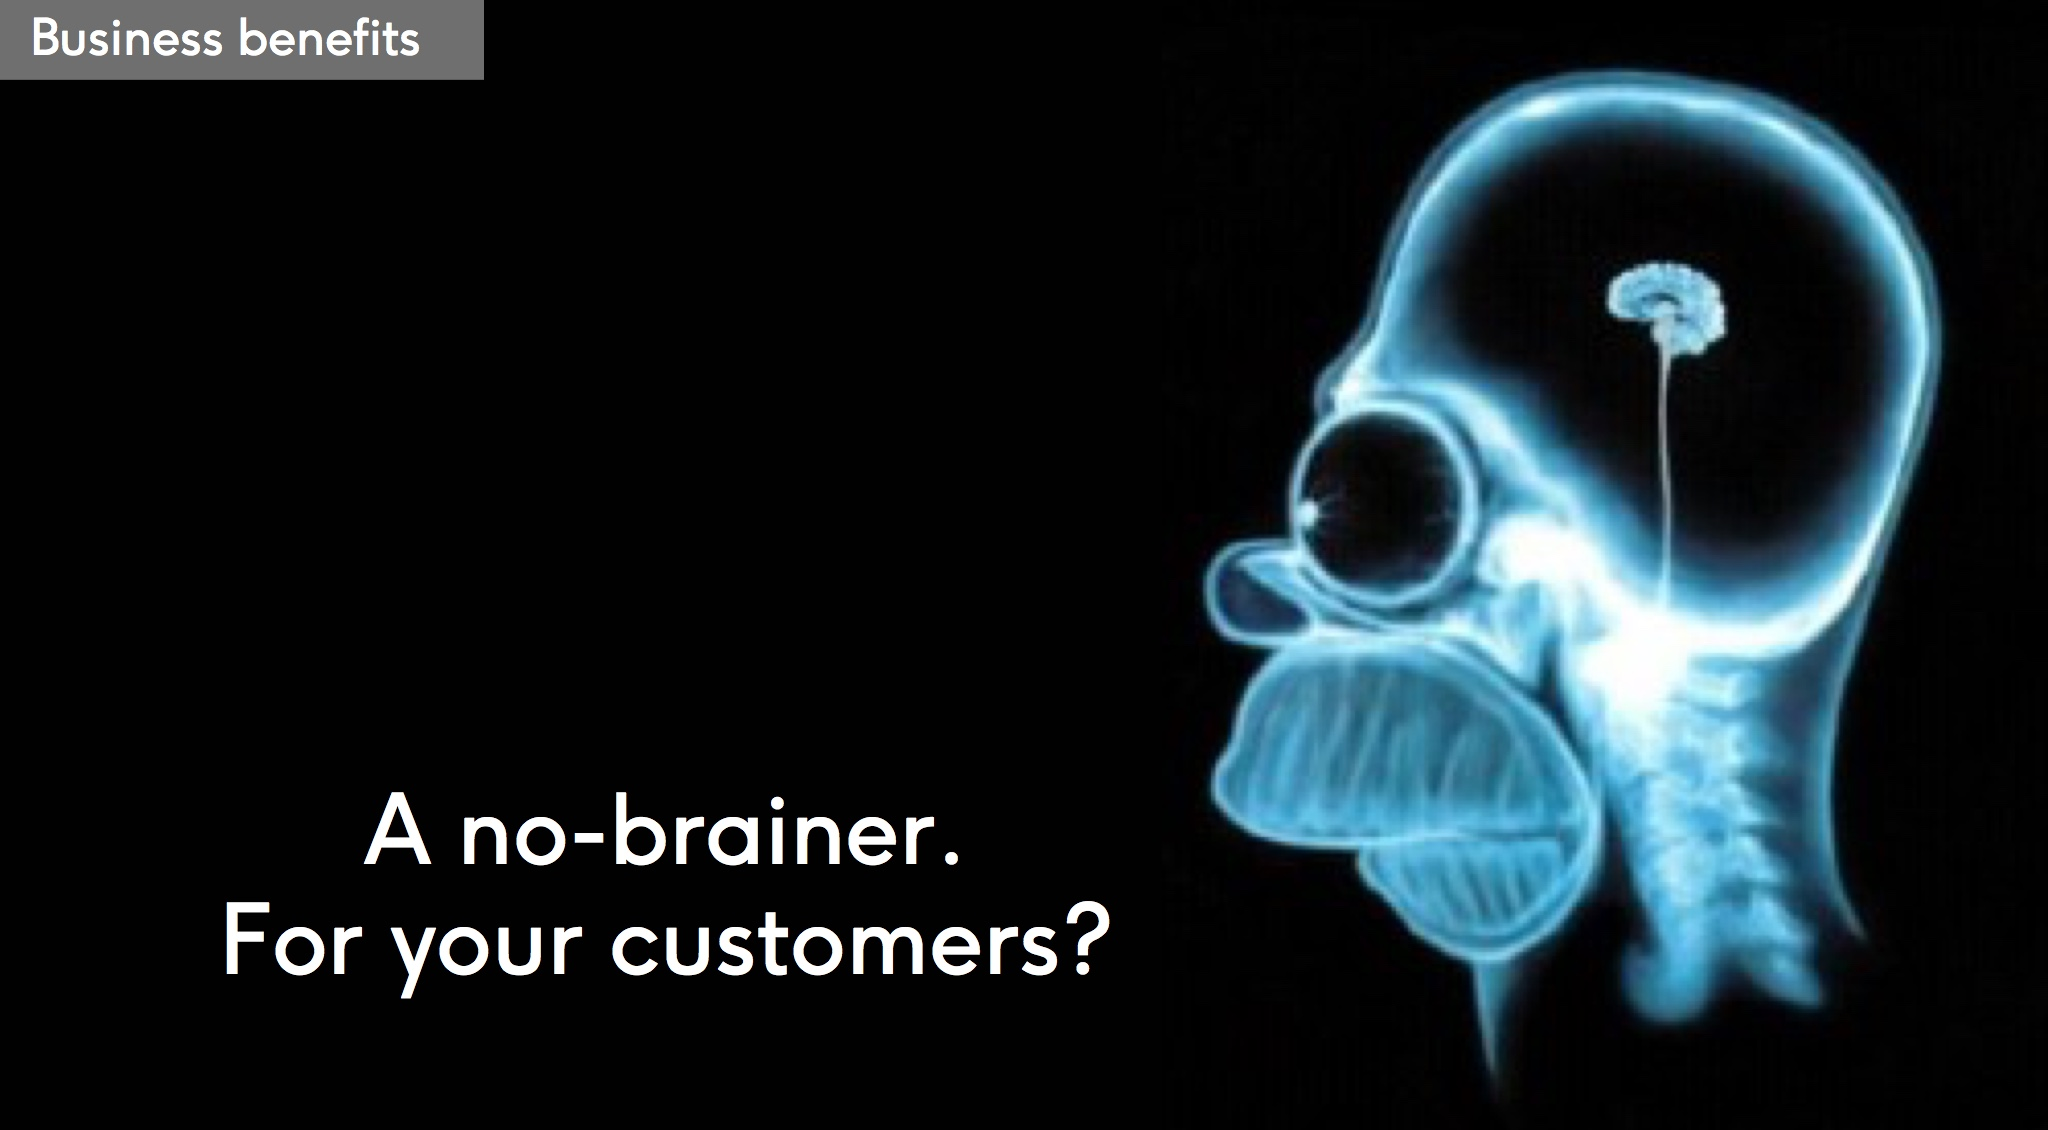 Business benefit: A no-brainer. For your customers?